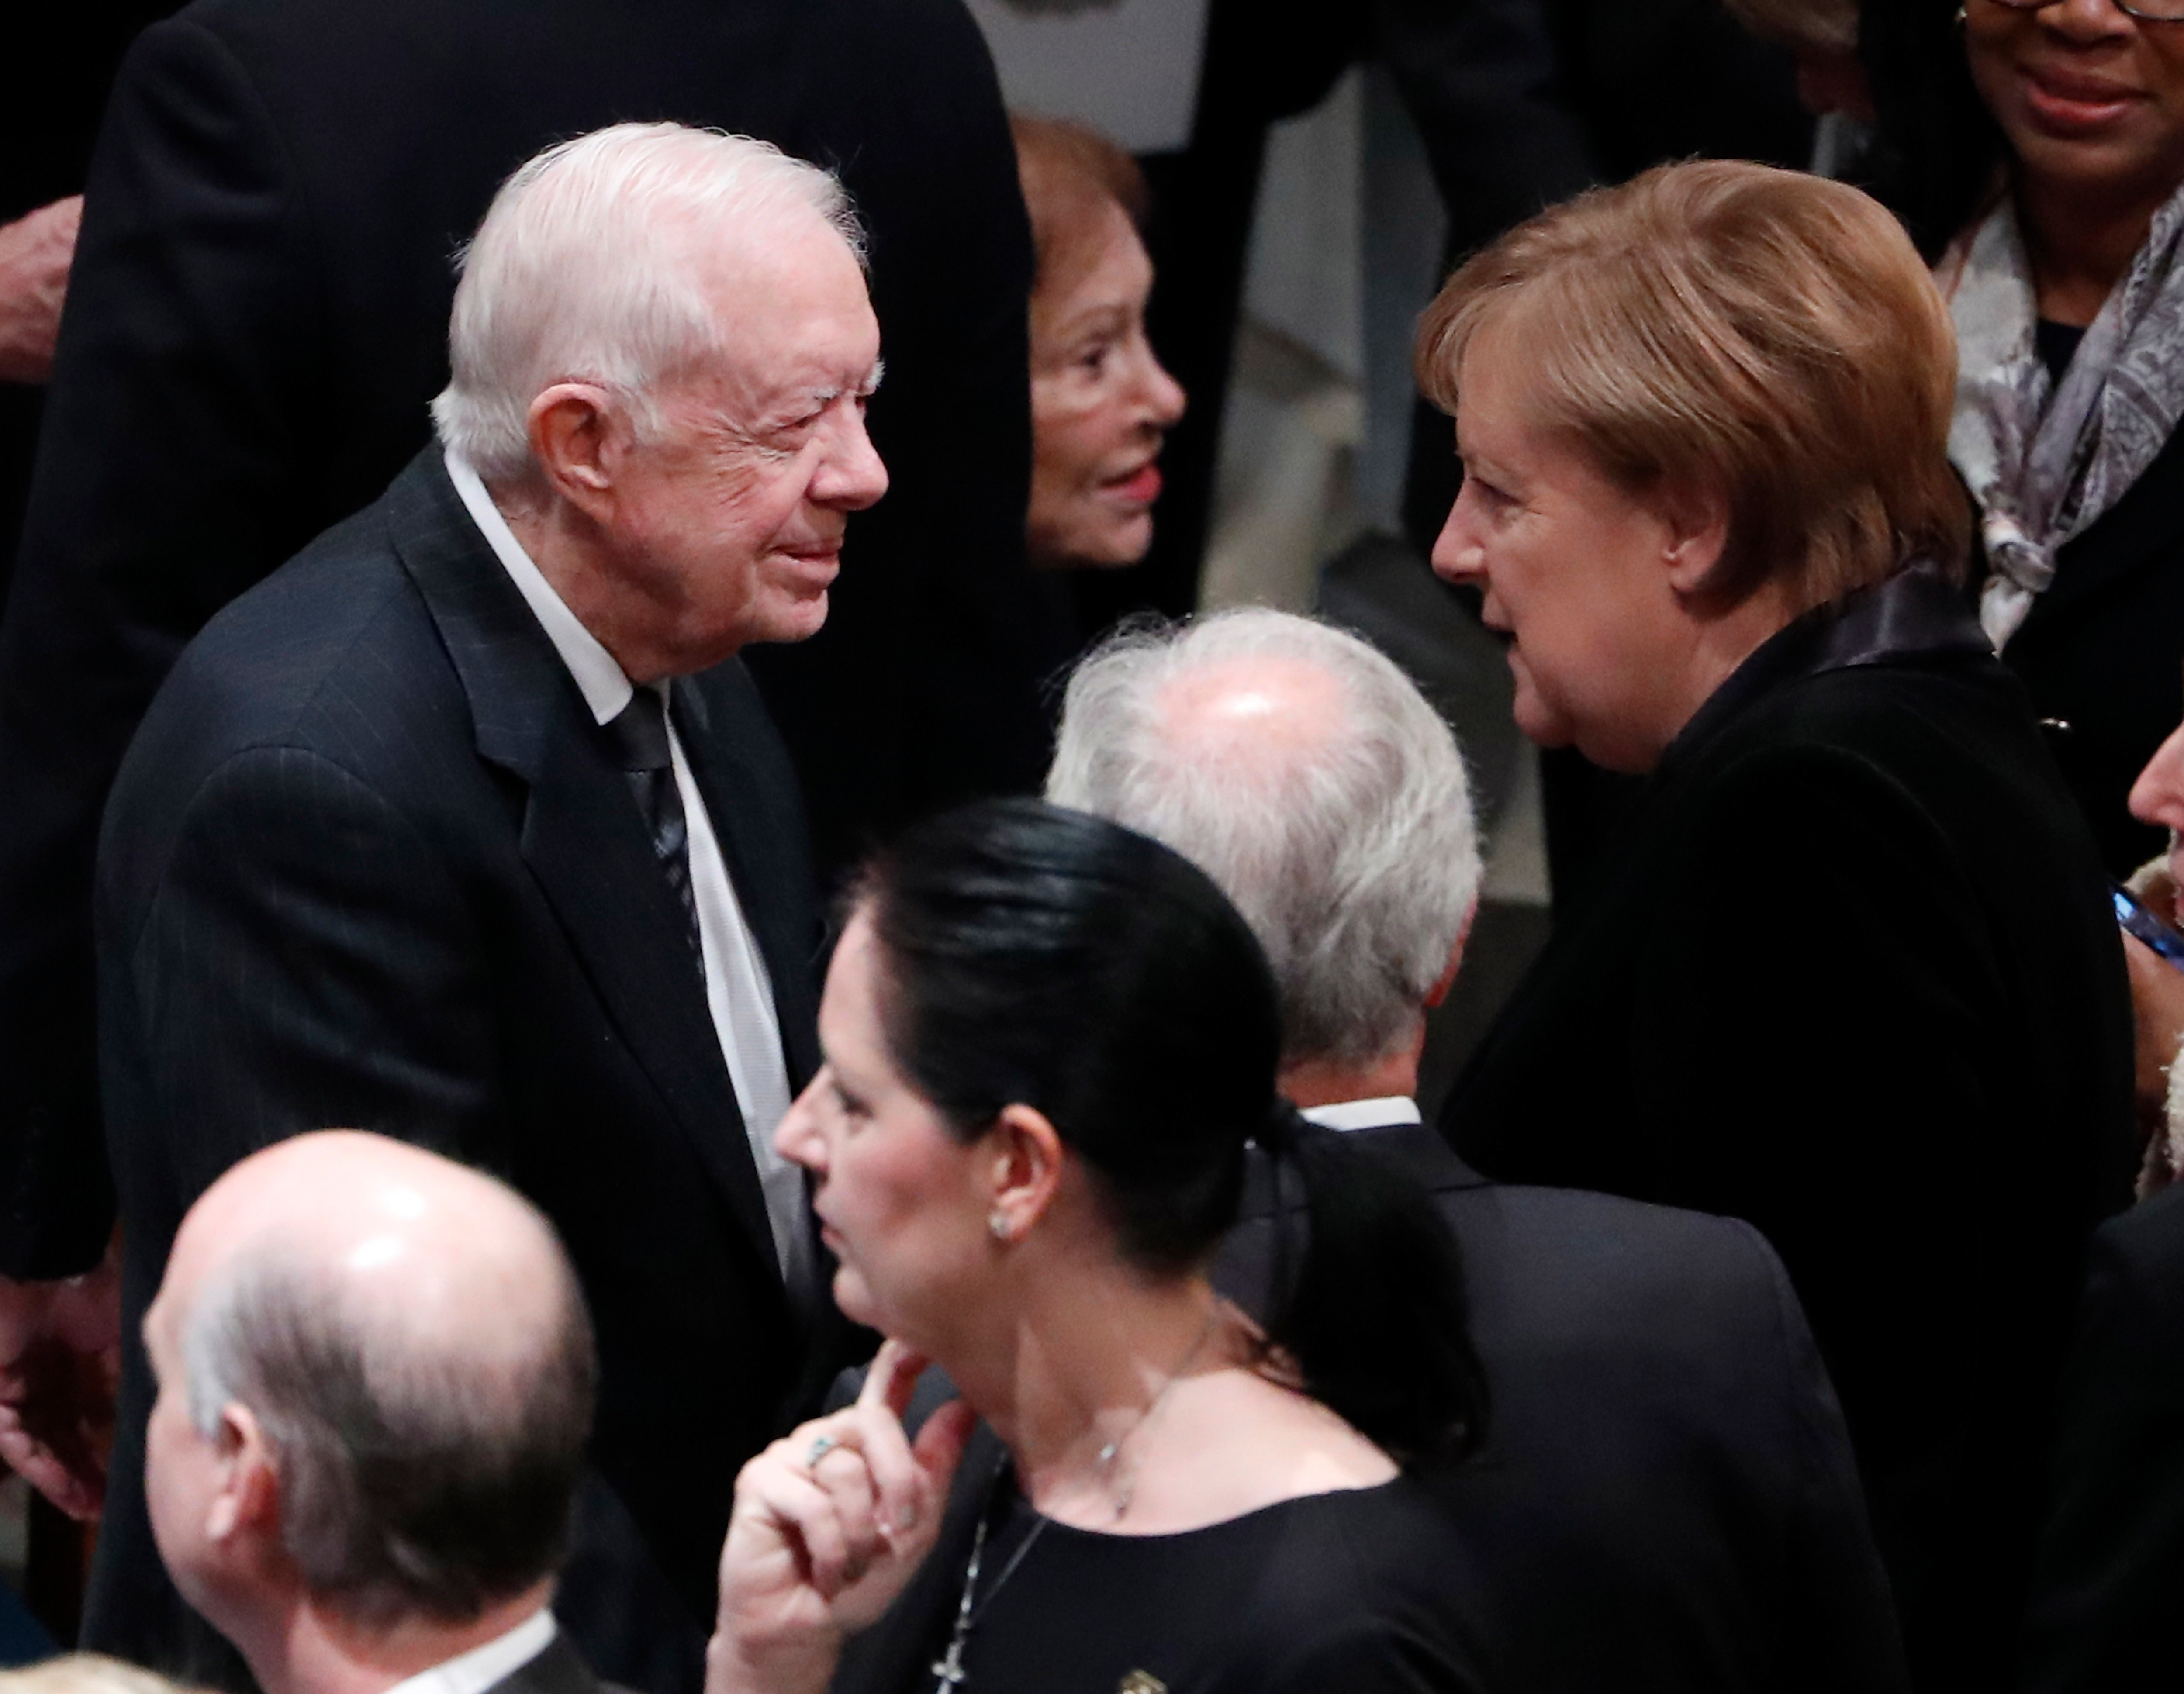 Former United States President Jimmy Carter talks with German Chancellor Angela Merkel as they arrive for the funeral services for former United States President George H. W. Bush at the National Cathedral, in Washington, DC on Dec. 5, 2018.